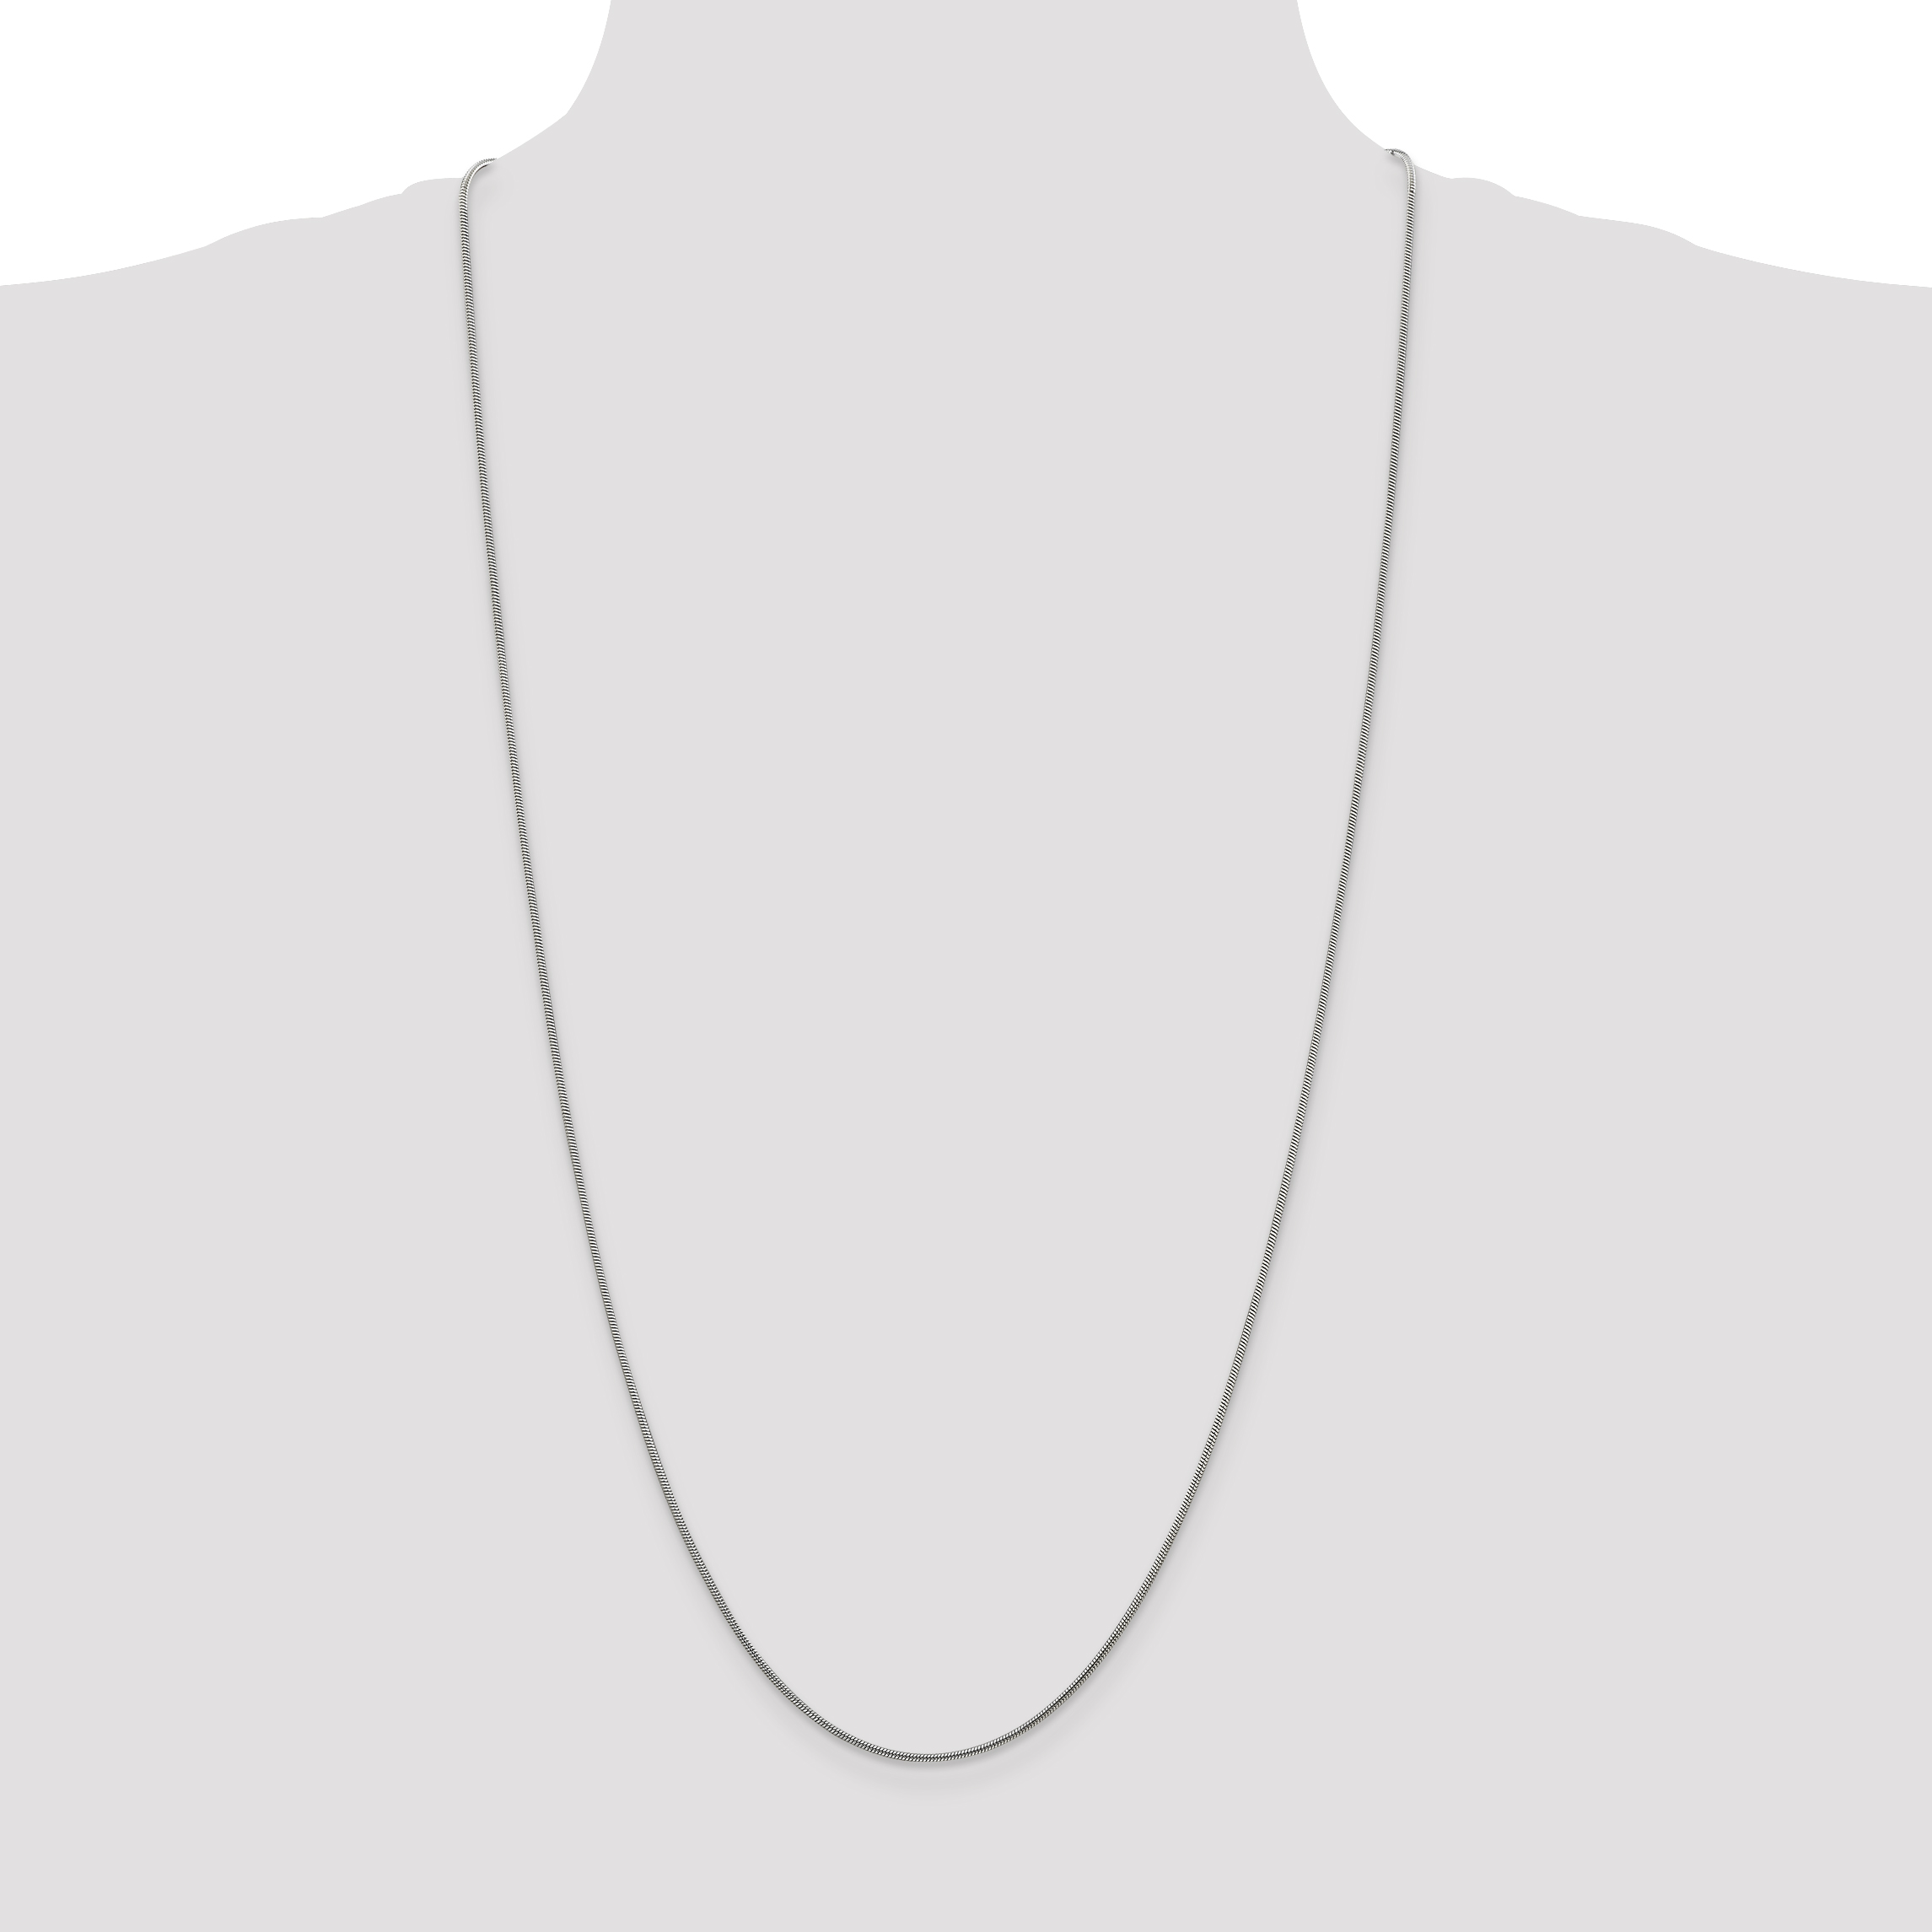 925 Sterling Silver 1.2mm Round Snake Chain Necklace 30 Inch Pendant Charm Fine Jewelry Gifts For Women For Her - image 1 de 5